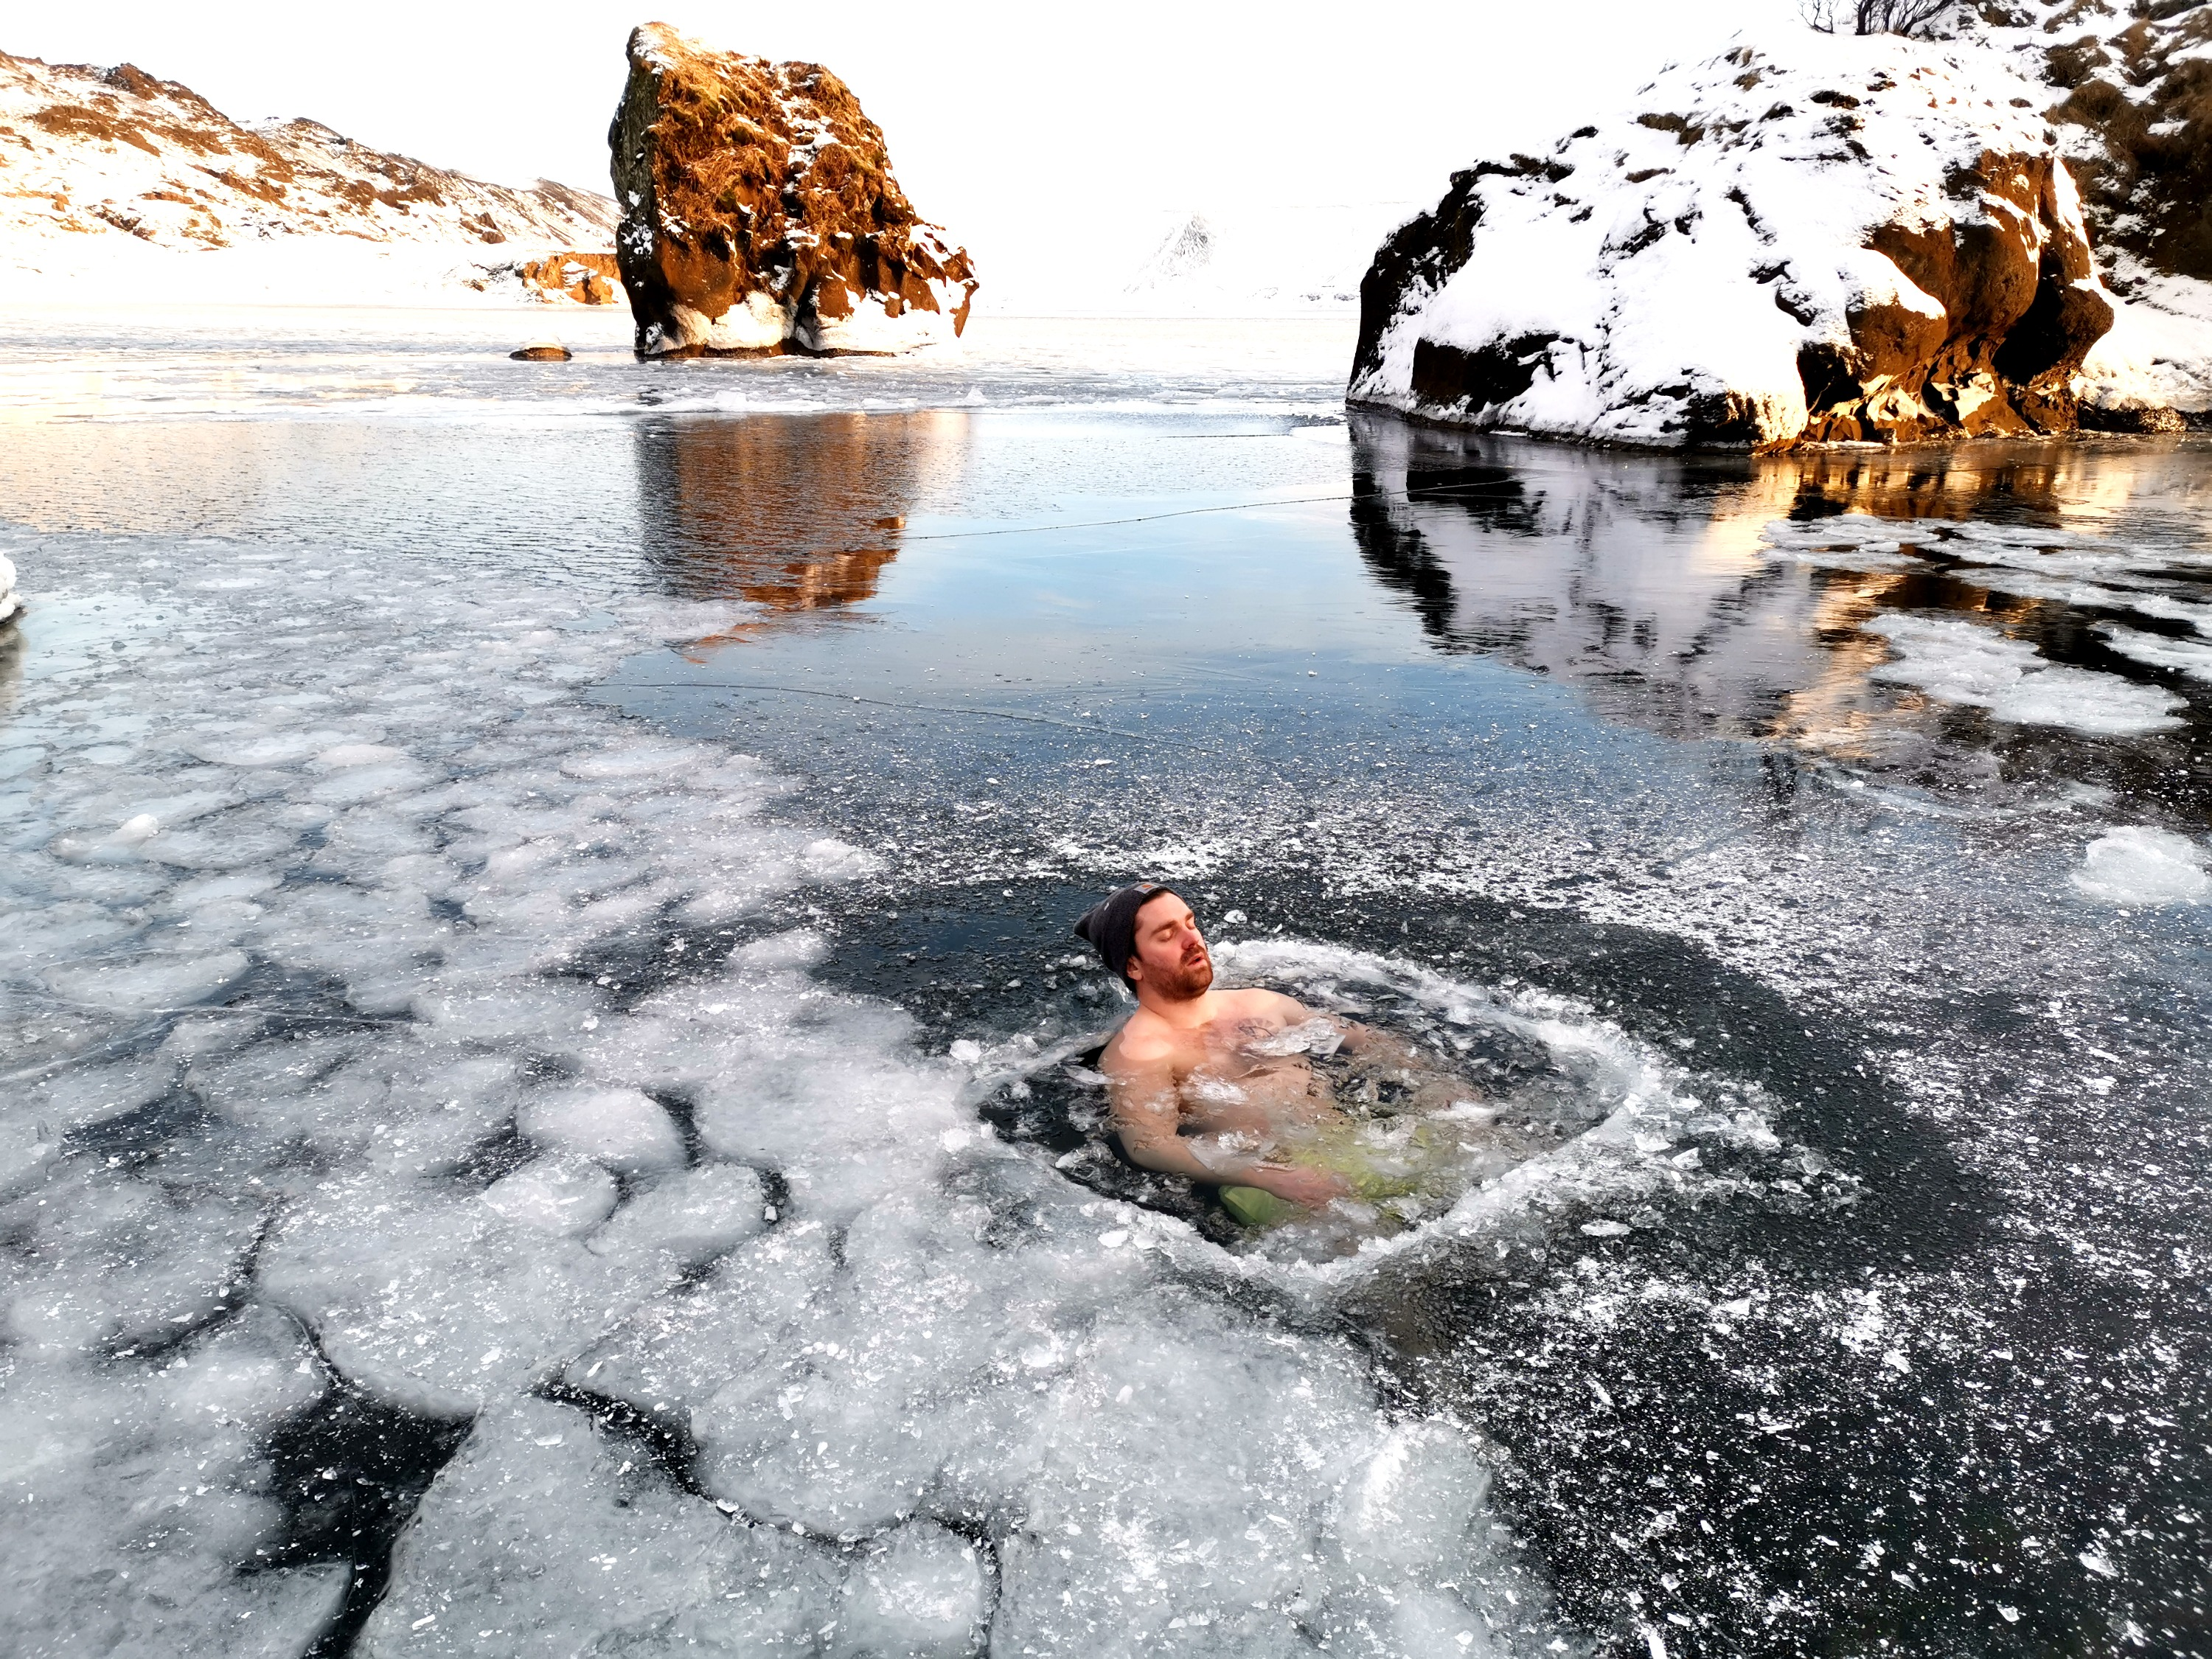 ANDRI ICELAND - ICE BATH IN NATURE